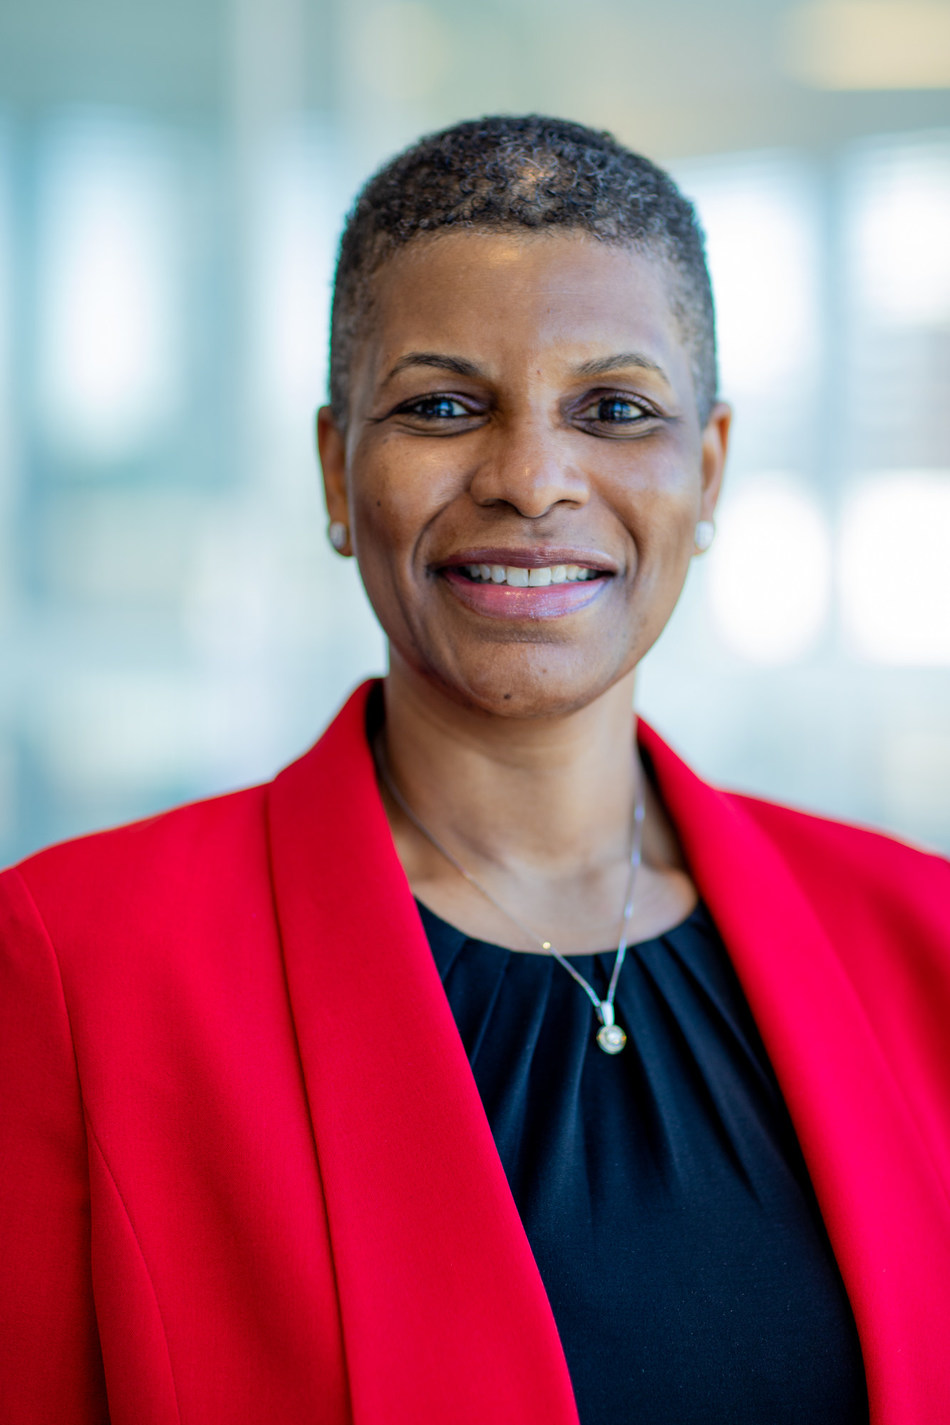 Children's Hospital of Philadelphia Appoints Sophia G. Holder as New Executive Vice President and Chief Financial Officer